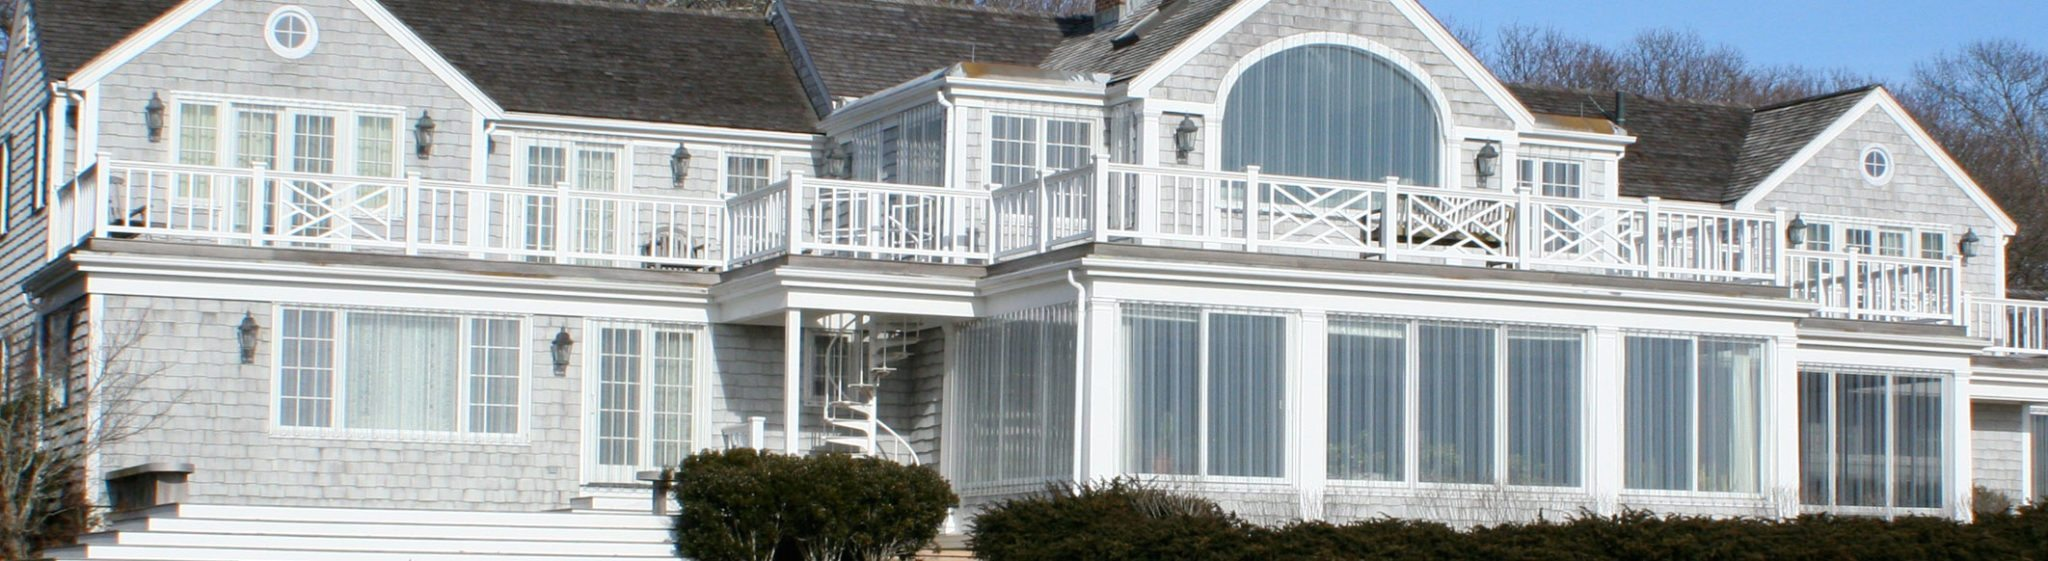 pull down hurricane shutters, outdoor storm shutters for windows, outside storm shutters